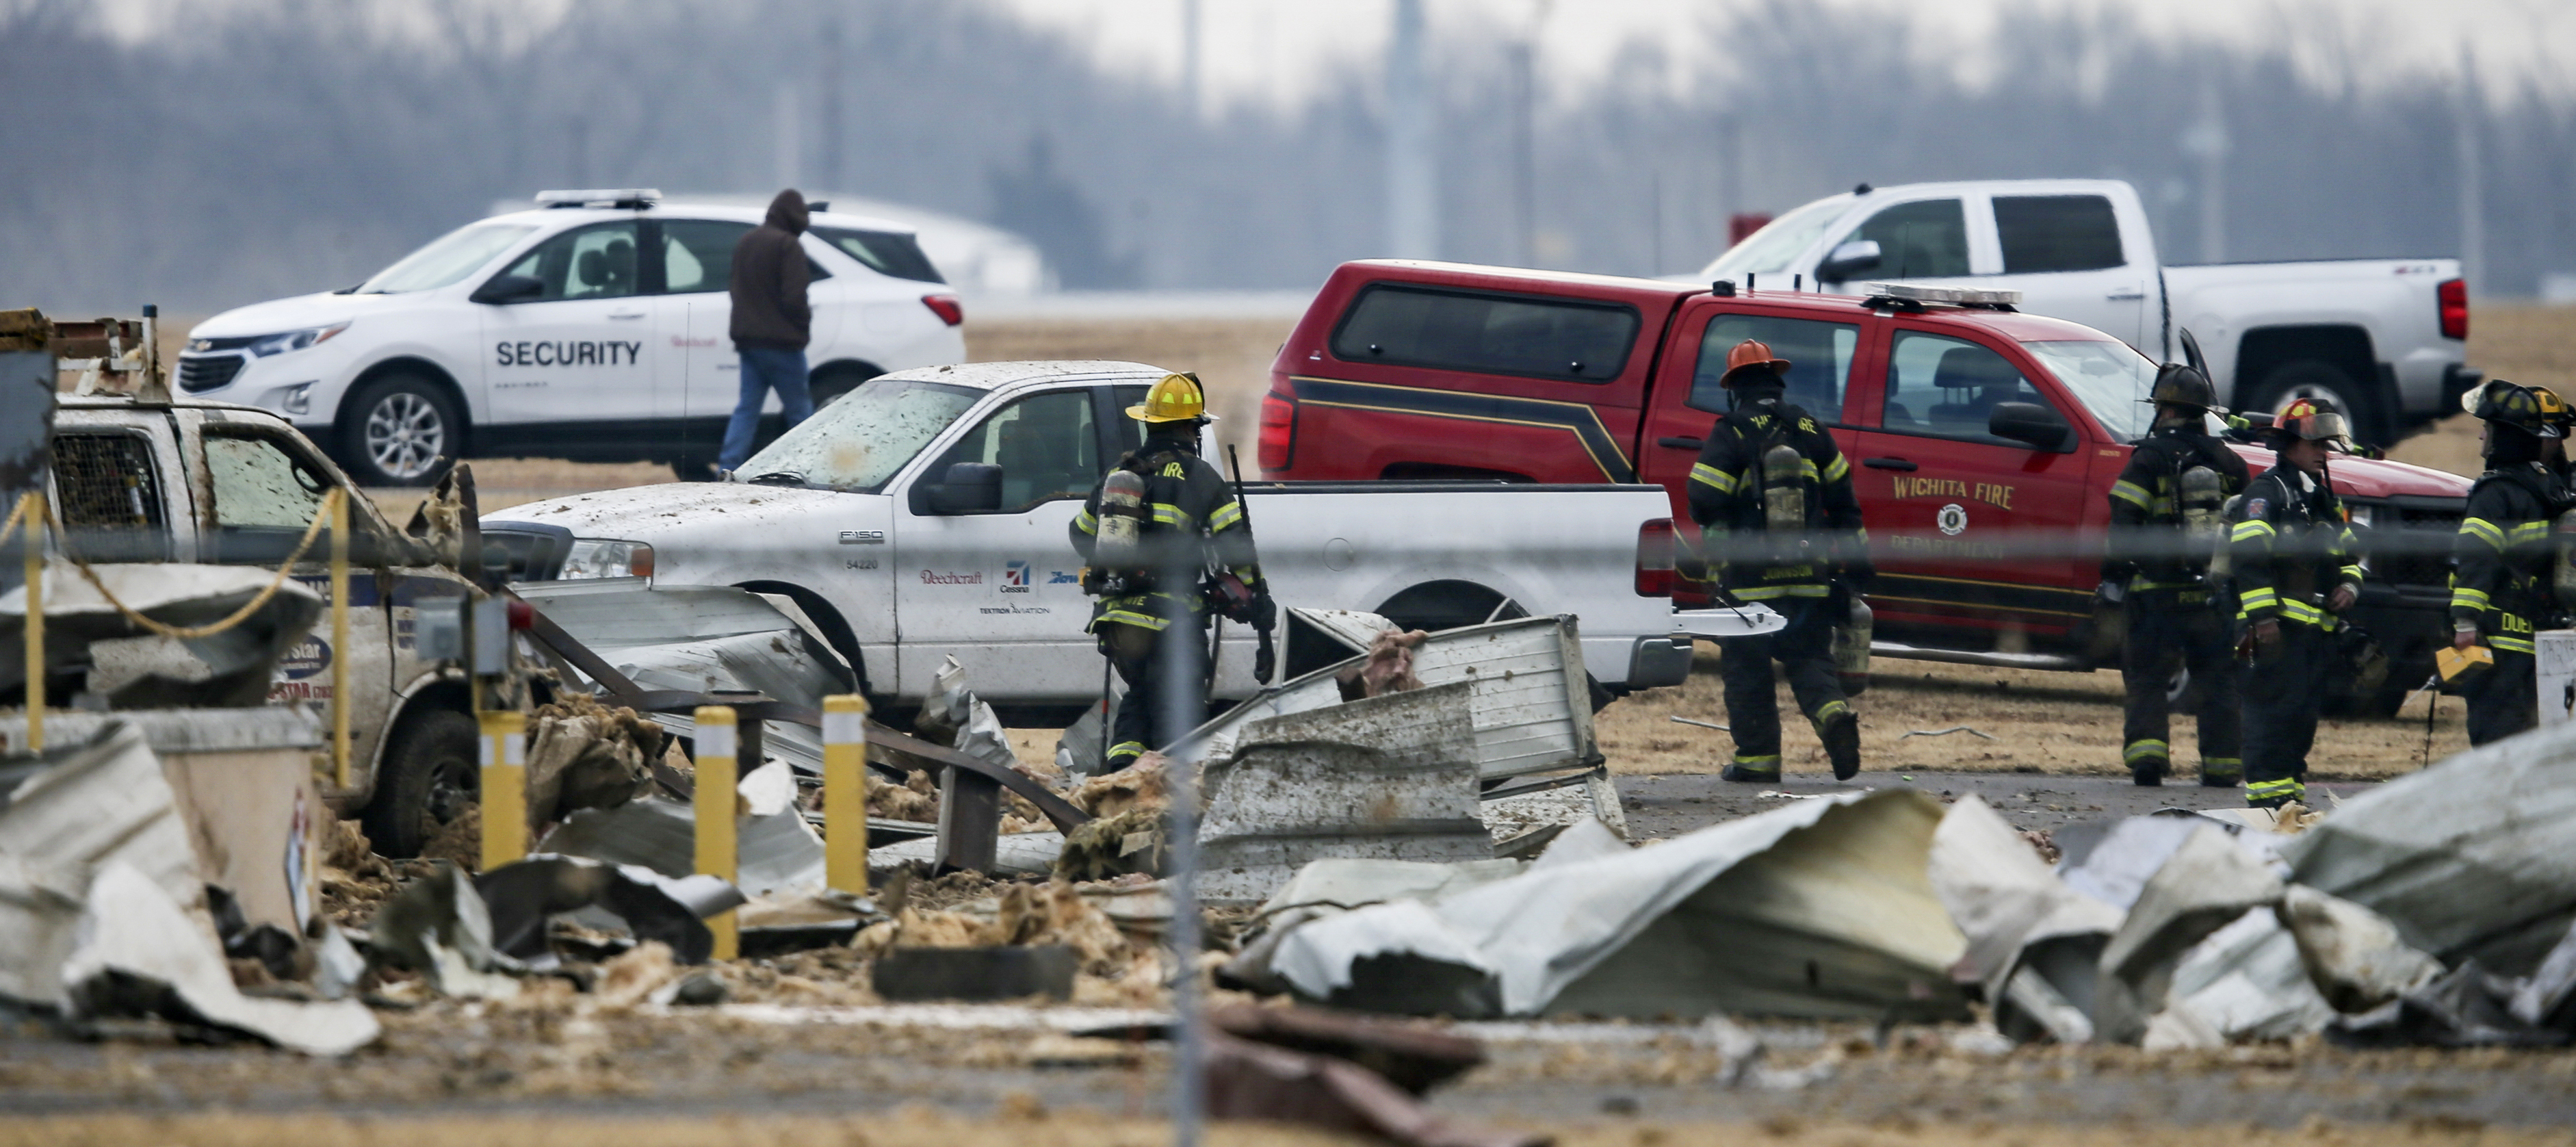 Authorities respond after a partial building collapse at Beechcraft aircraft manufacturing facility in Wichita, Kan., Friday, Dec. 27, 2019.